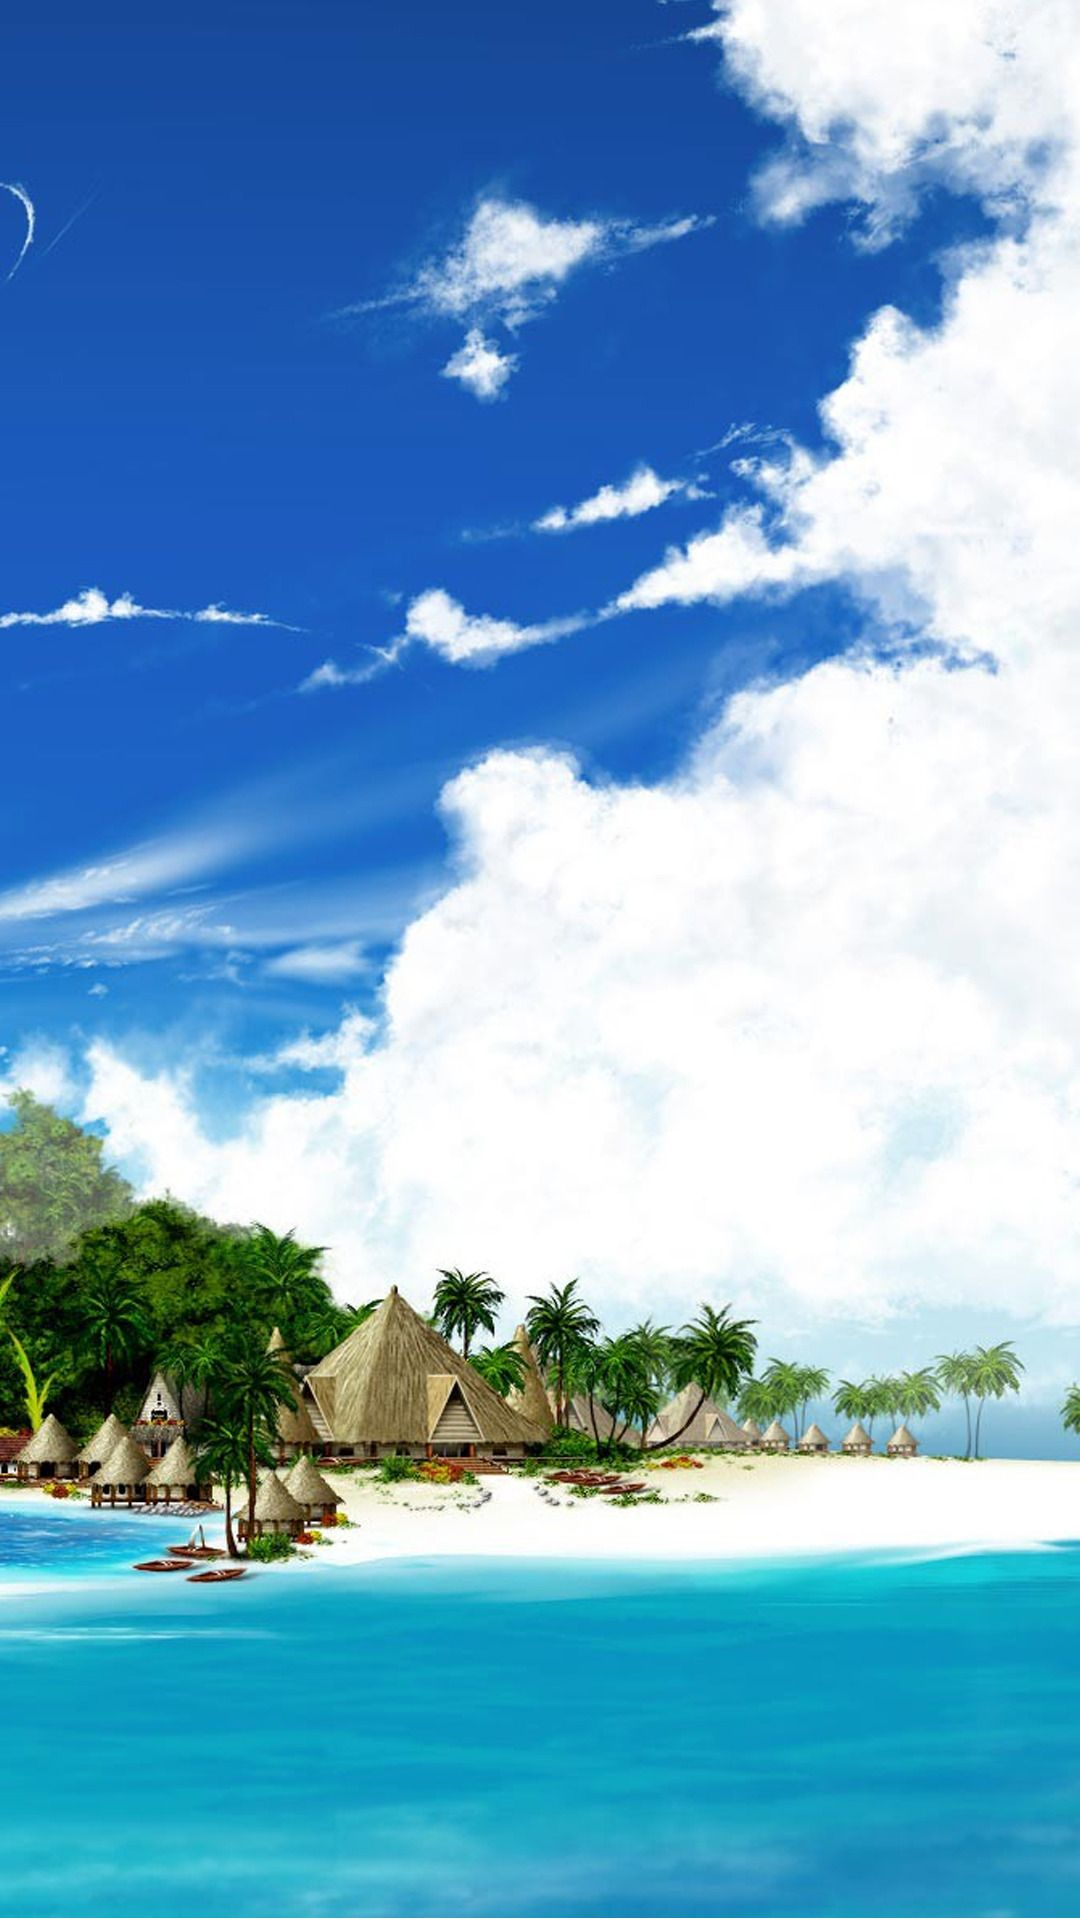 tropical beach resort illustration android wallpaper